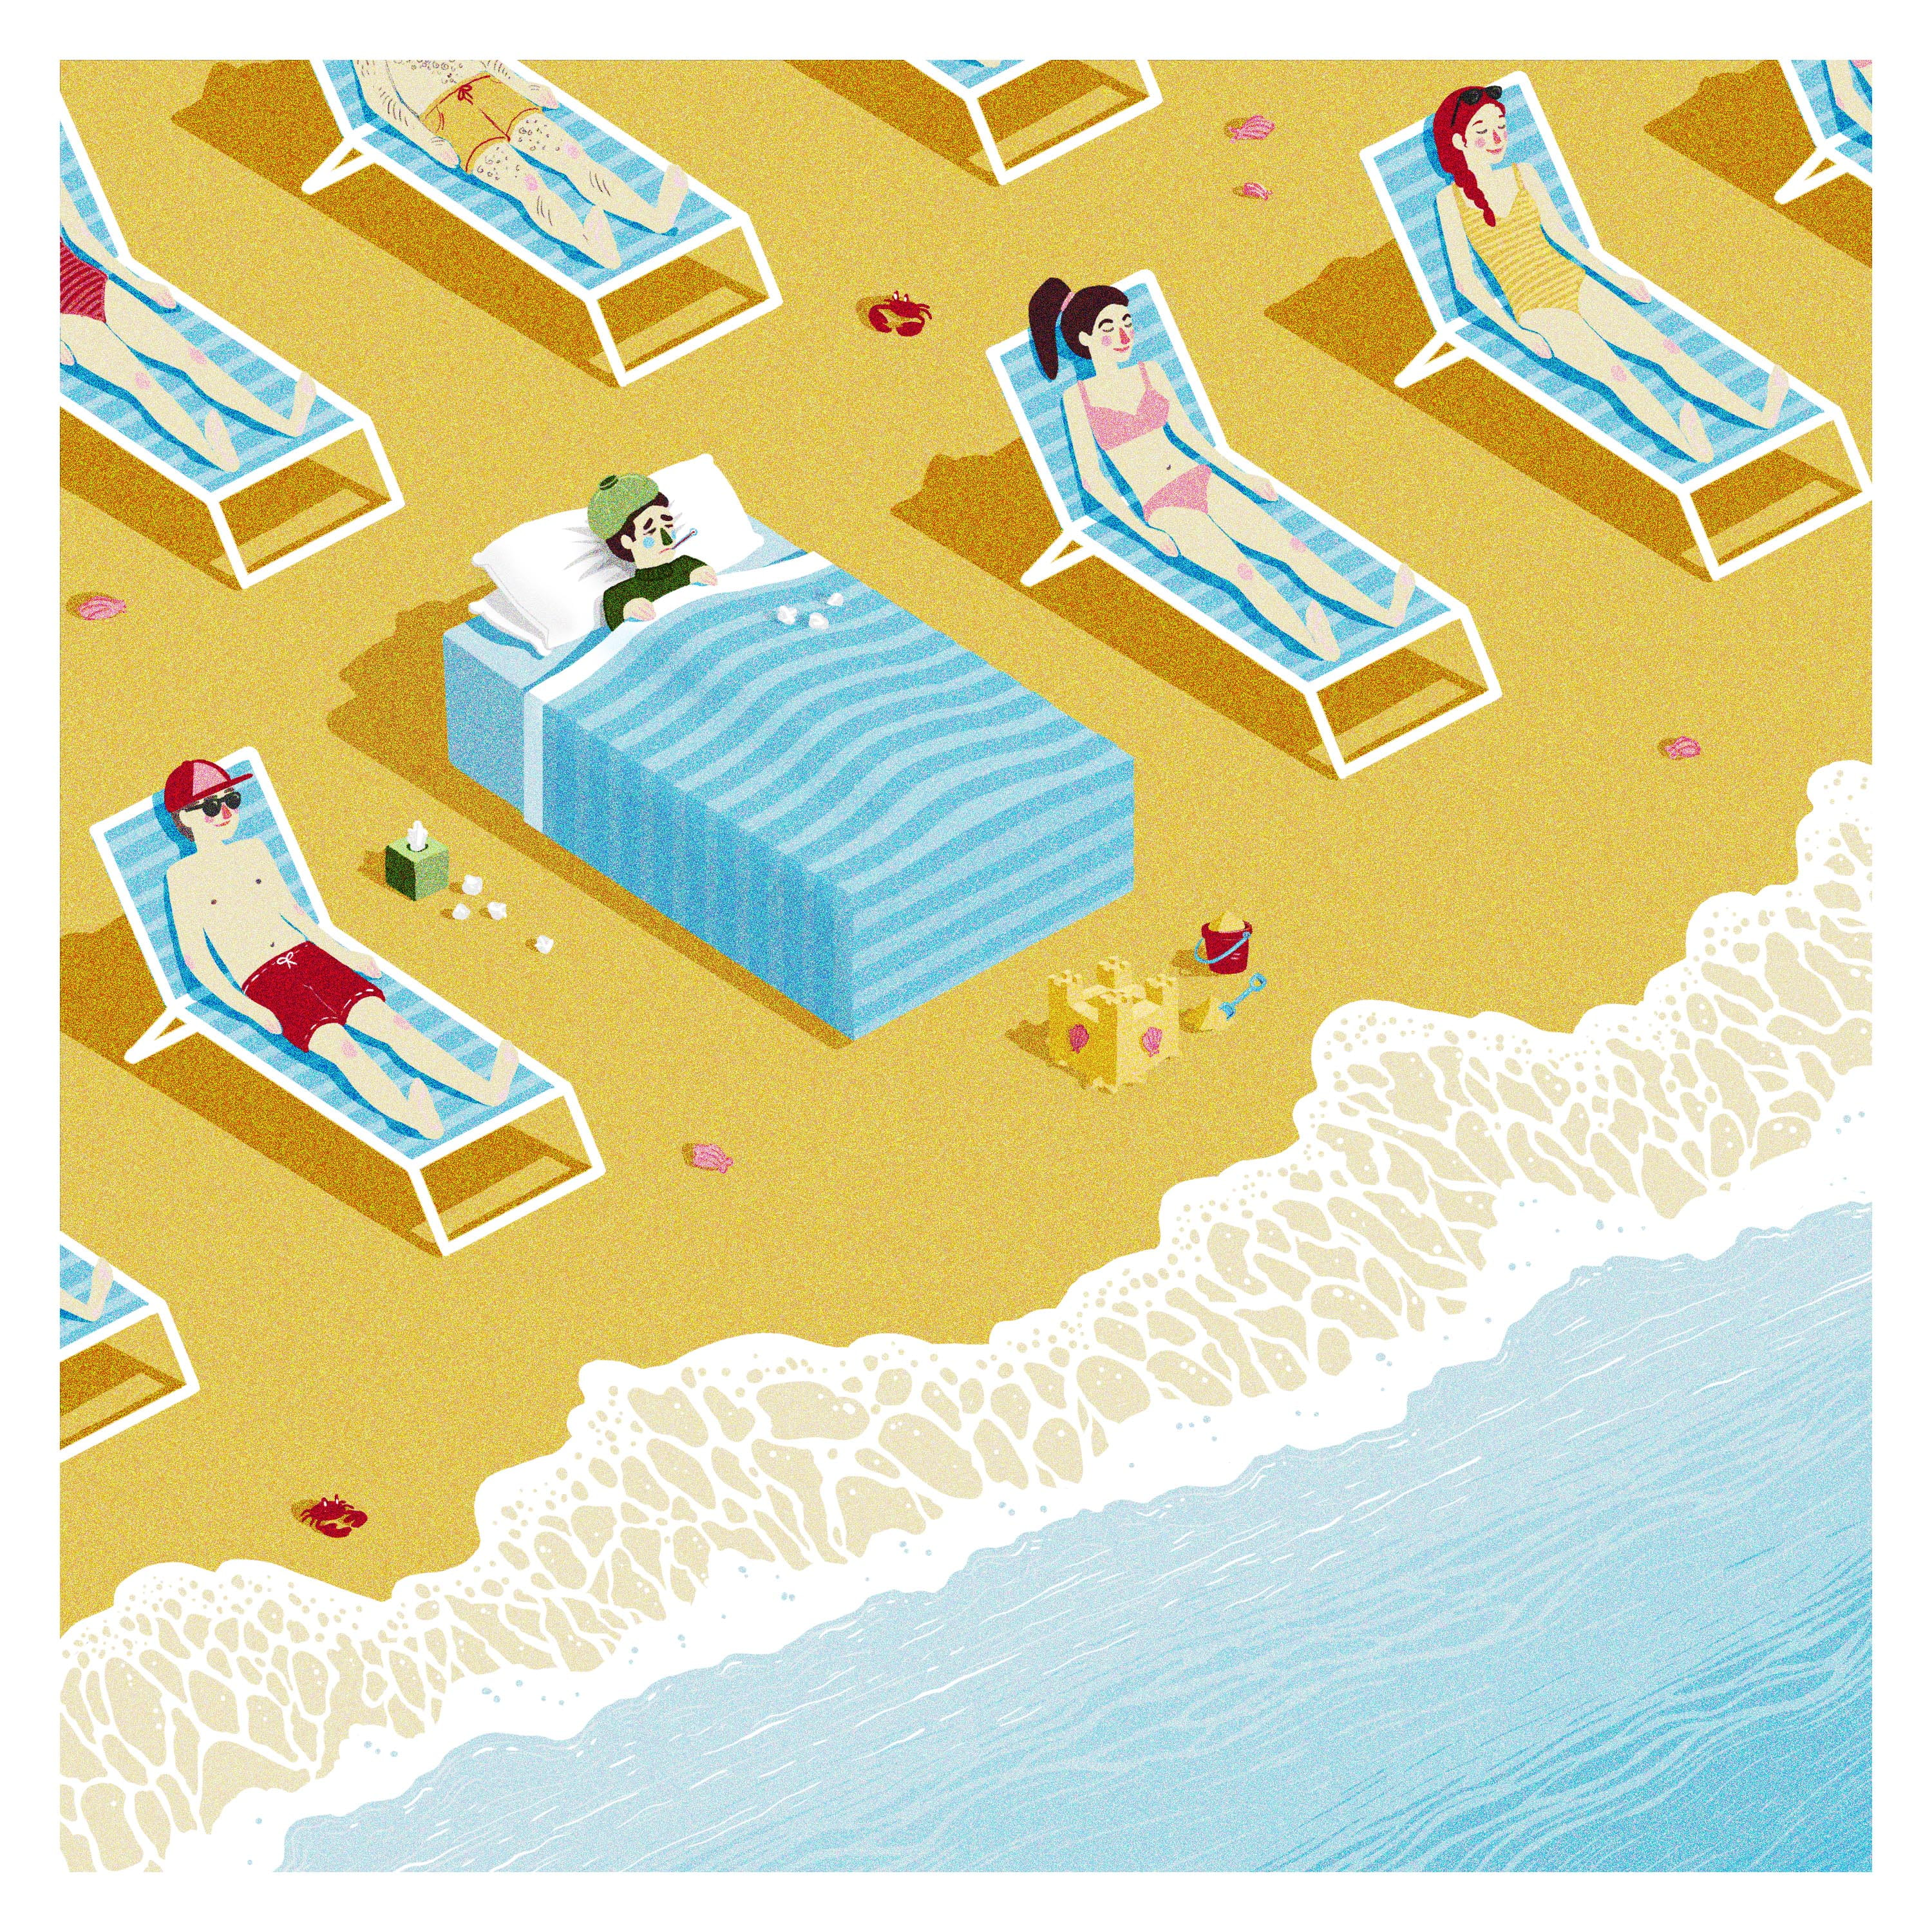 An illustration, people sunbathing at a beach by the sea, an ill person is shown tucked into their bed amongst a crowd of sunbeds.